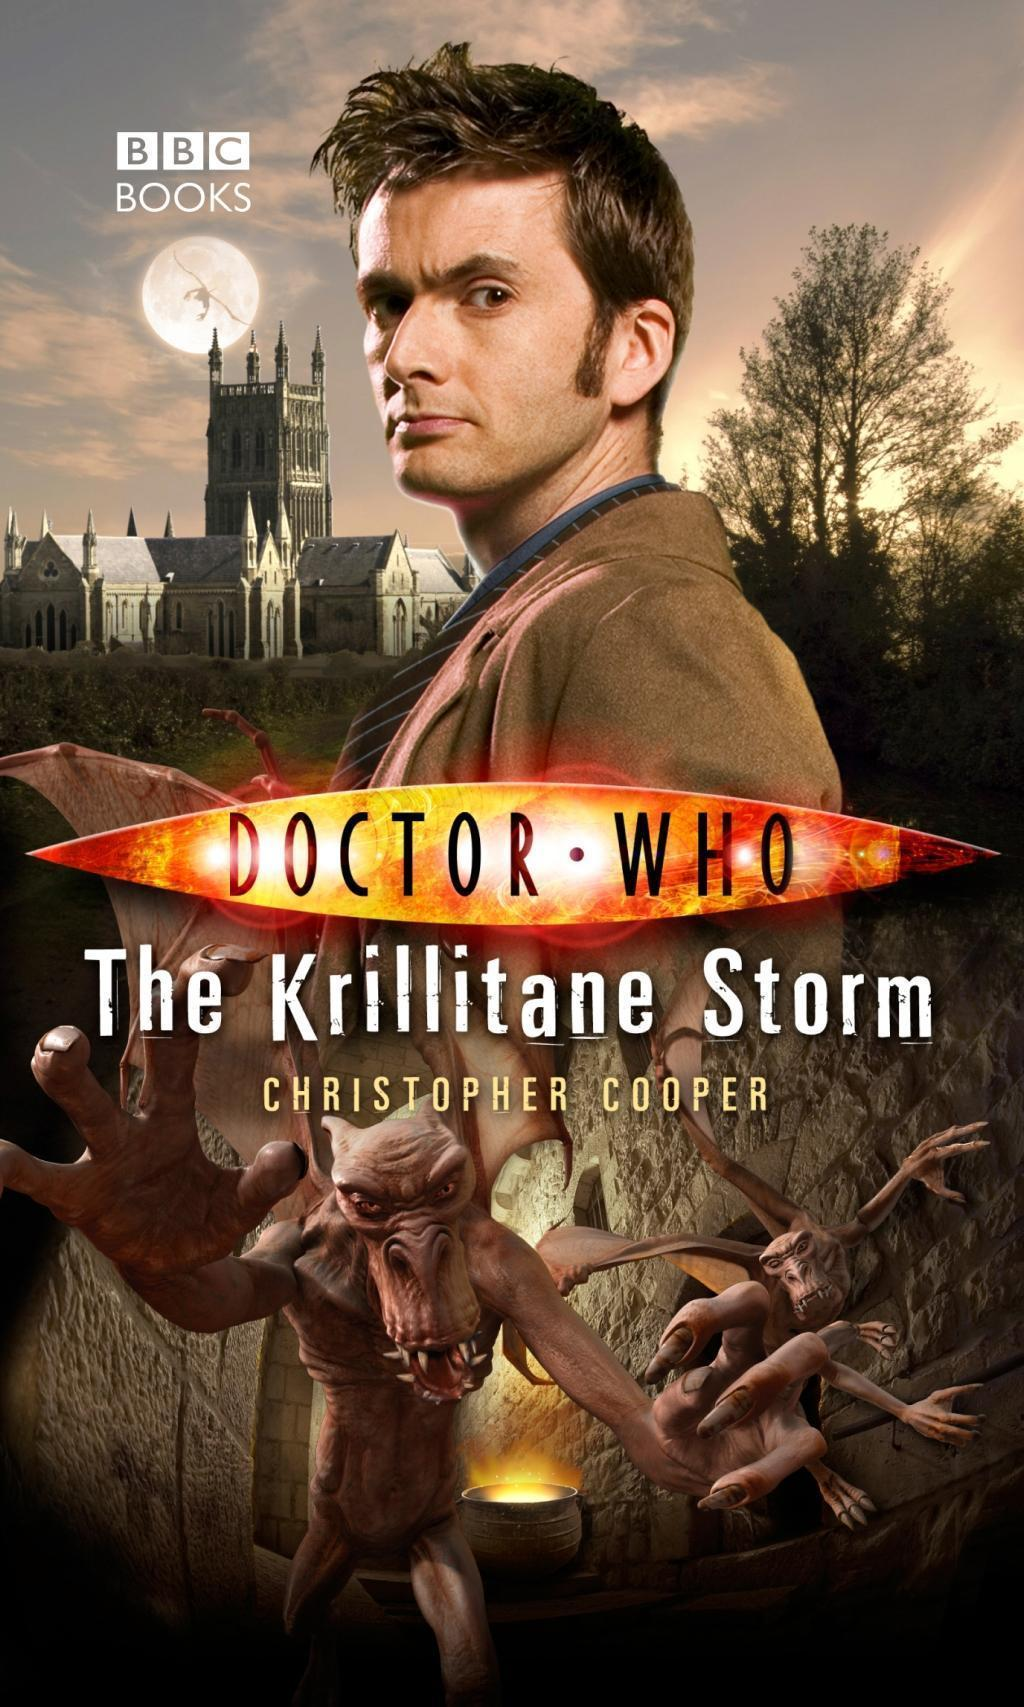 Doctor Who: The Krillitane Storm